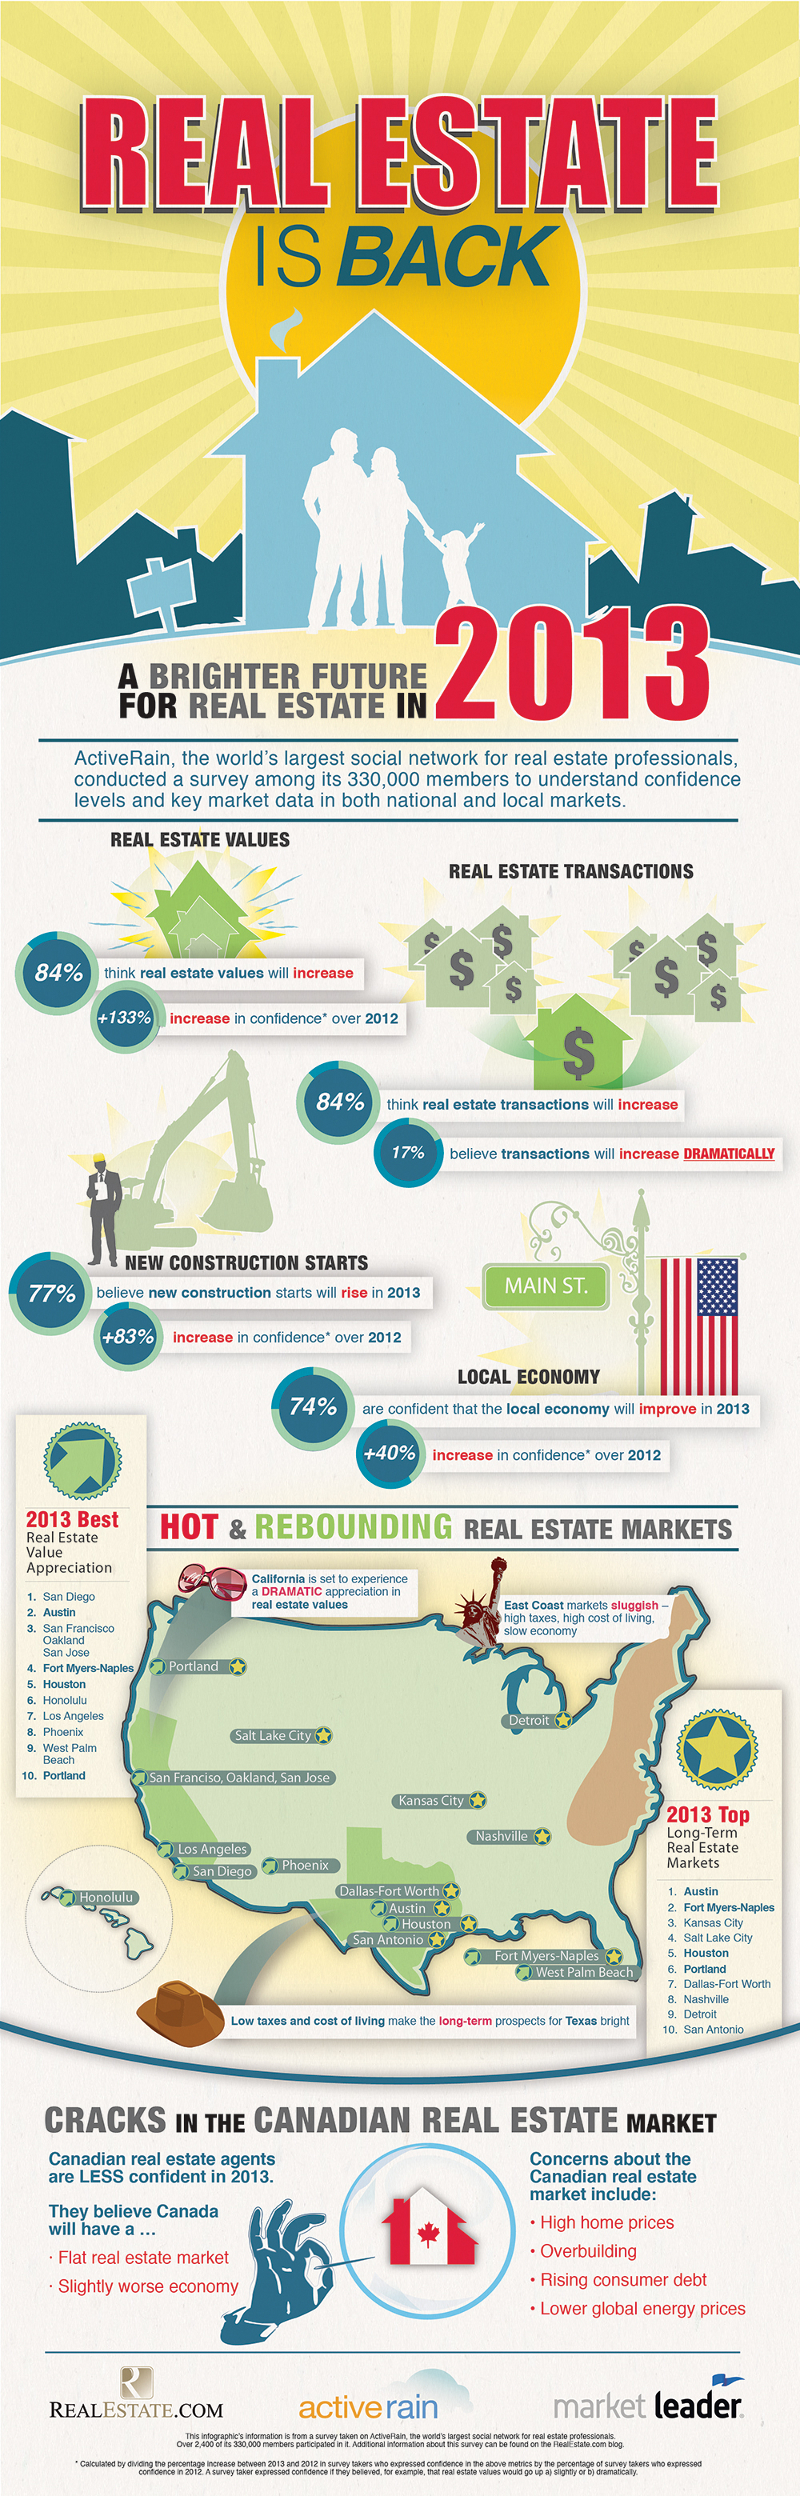 Real Estate Marketing Trends